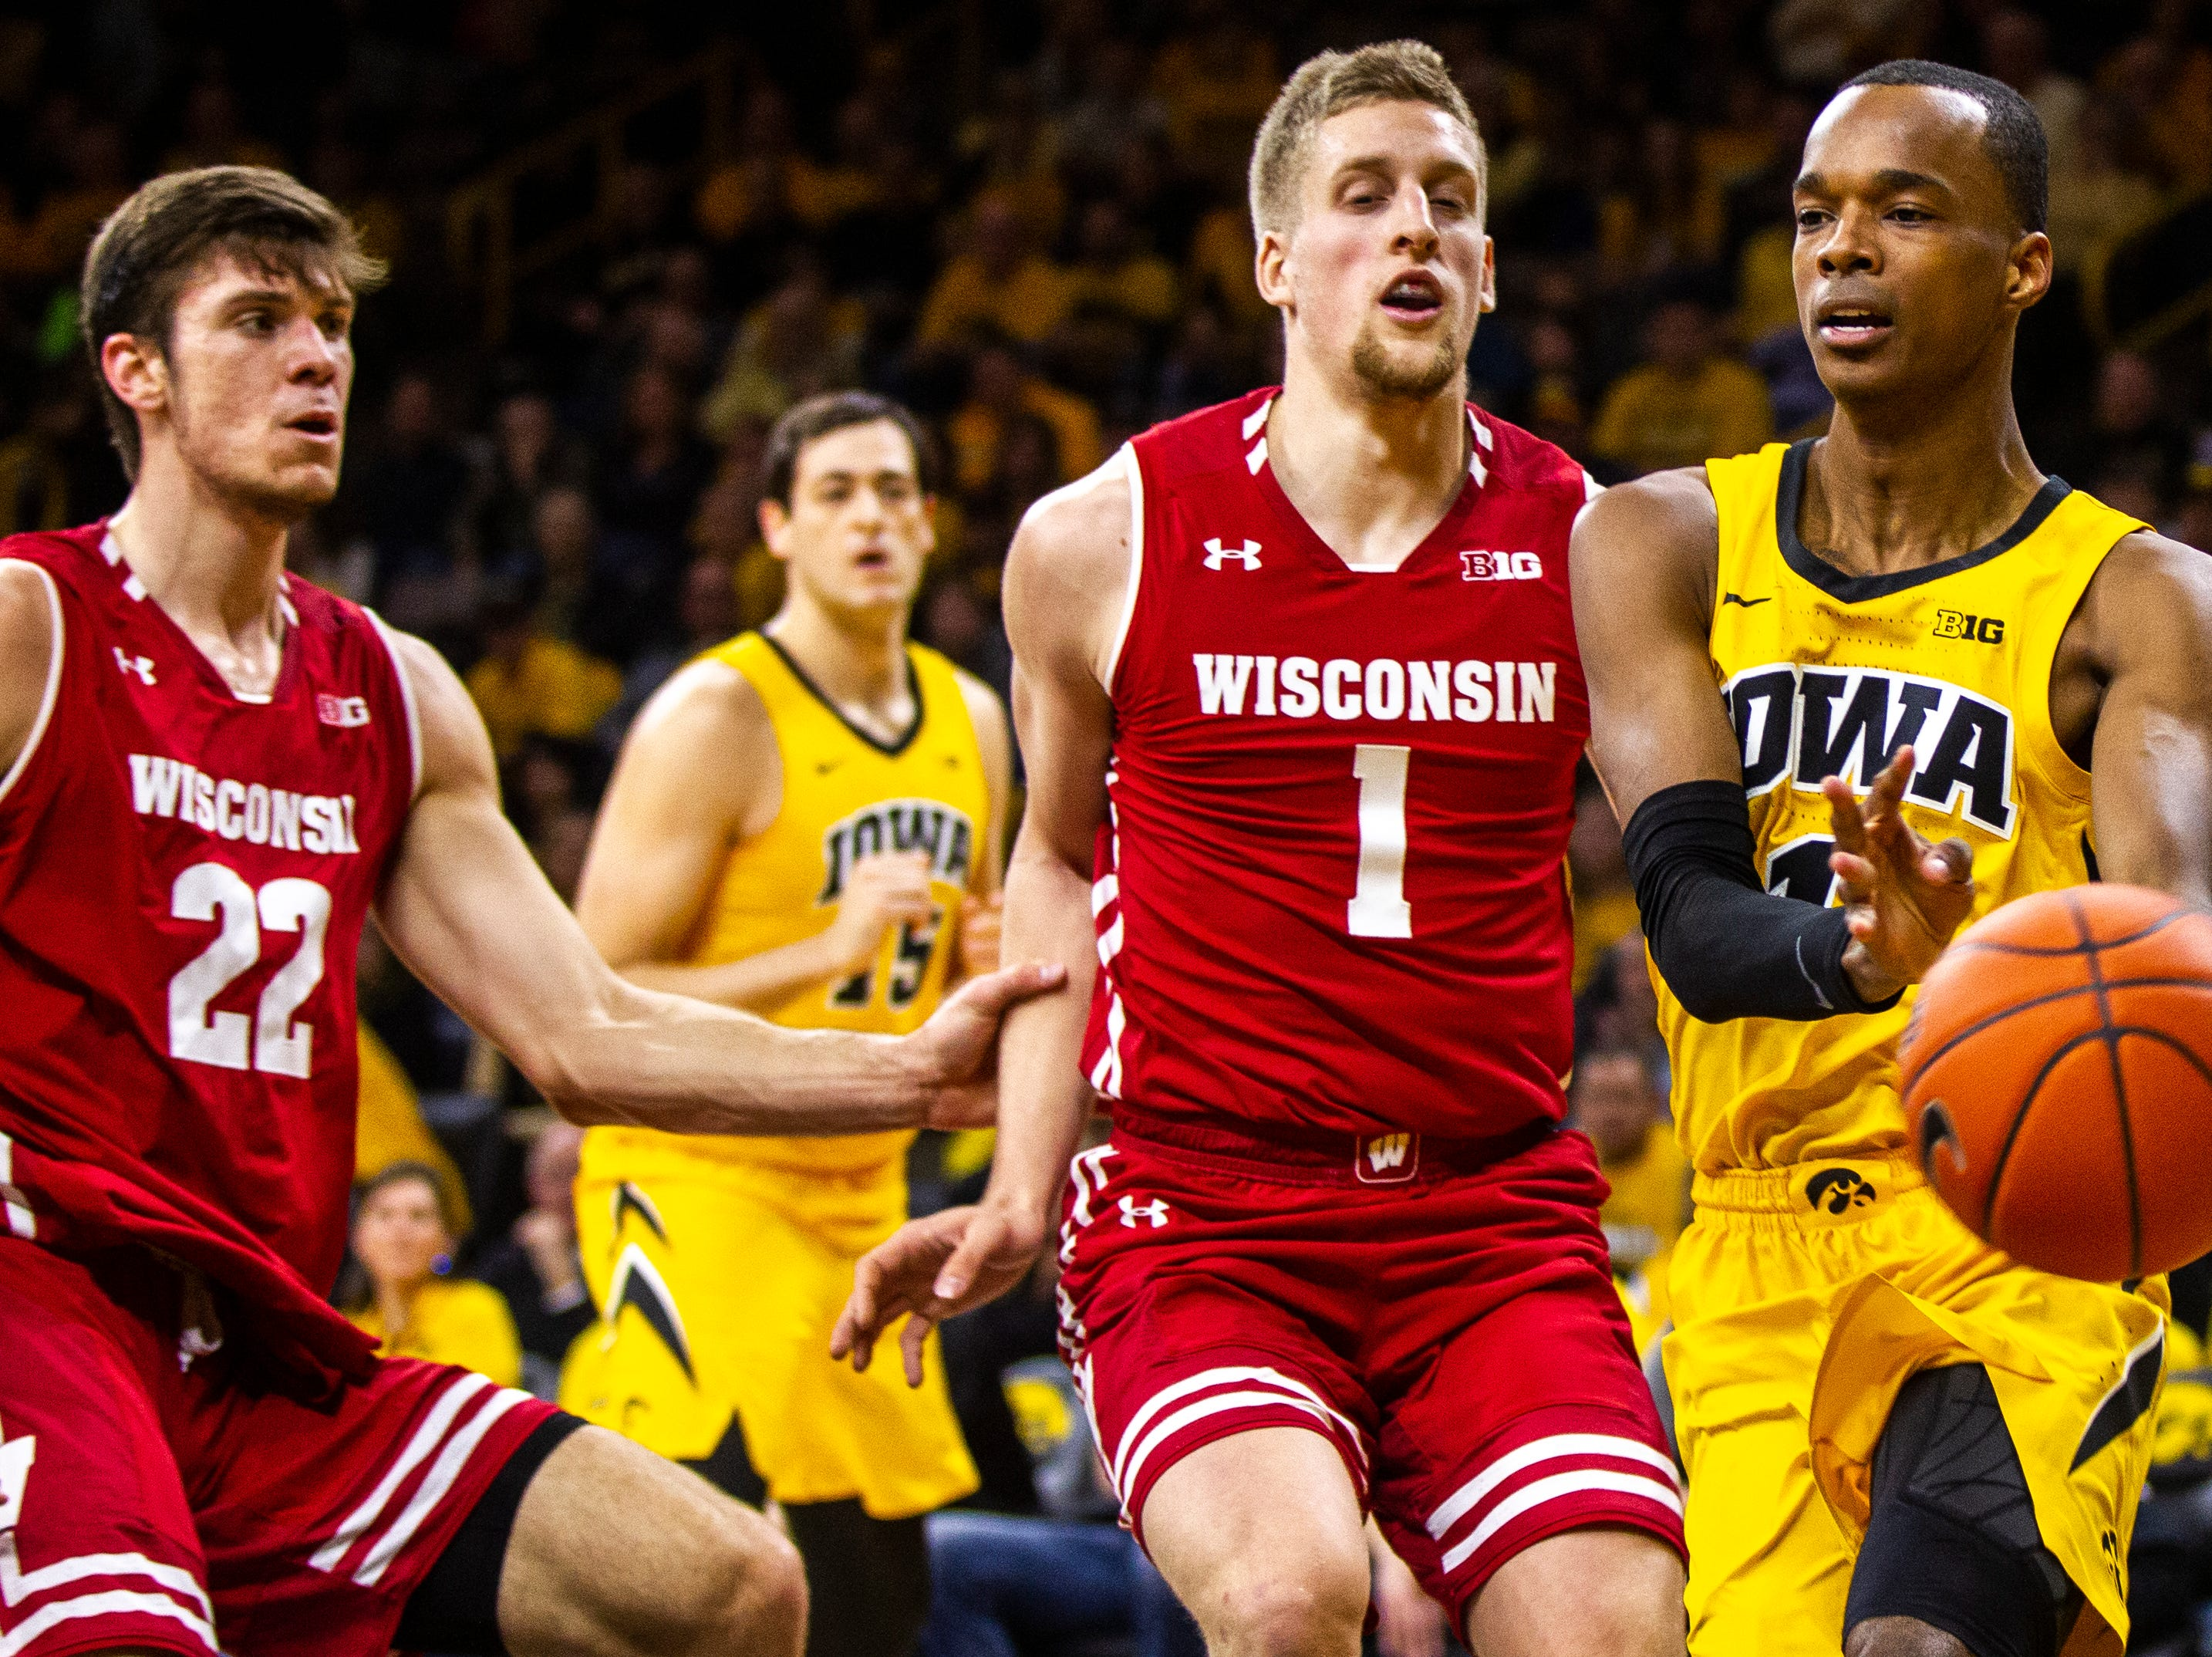 Iowa guard Maishe Dailey (1) passes while being defended by Wisconsin's Brevin Pritzl (1) during a NCAA Big Ten Conference men's basketball game on Friday, Nov. 30, 2018, at Carver-Hawkeye Arena in Iowa City.